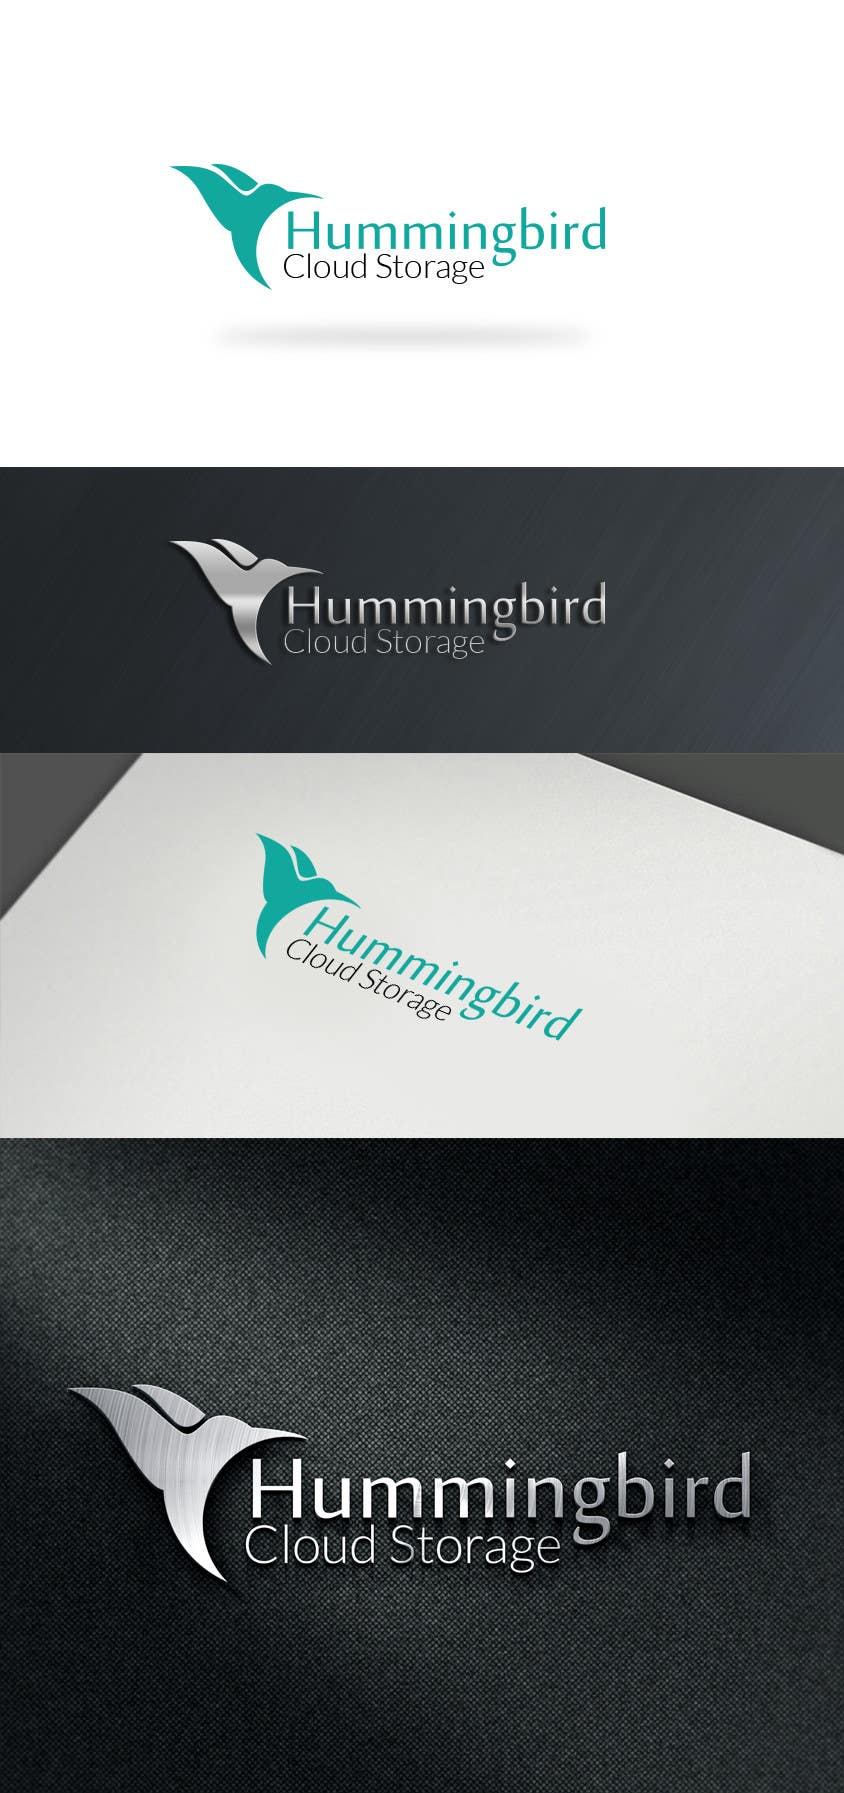 Konkurrenceindlæg #                                        41                                      for                                         Hummingbird Cloud Storage Logo